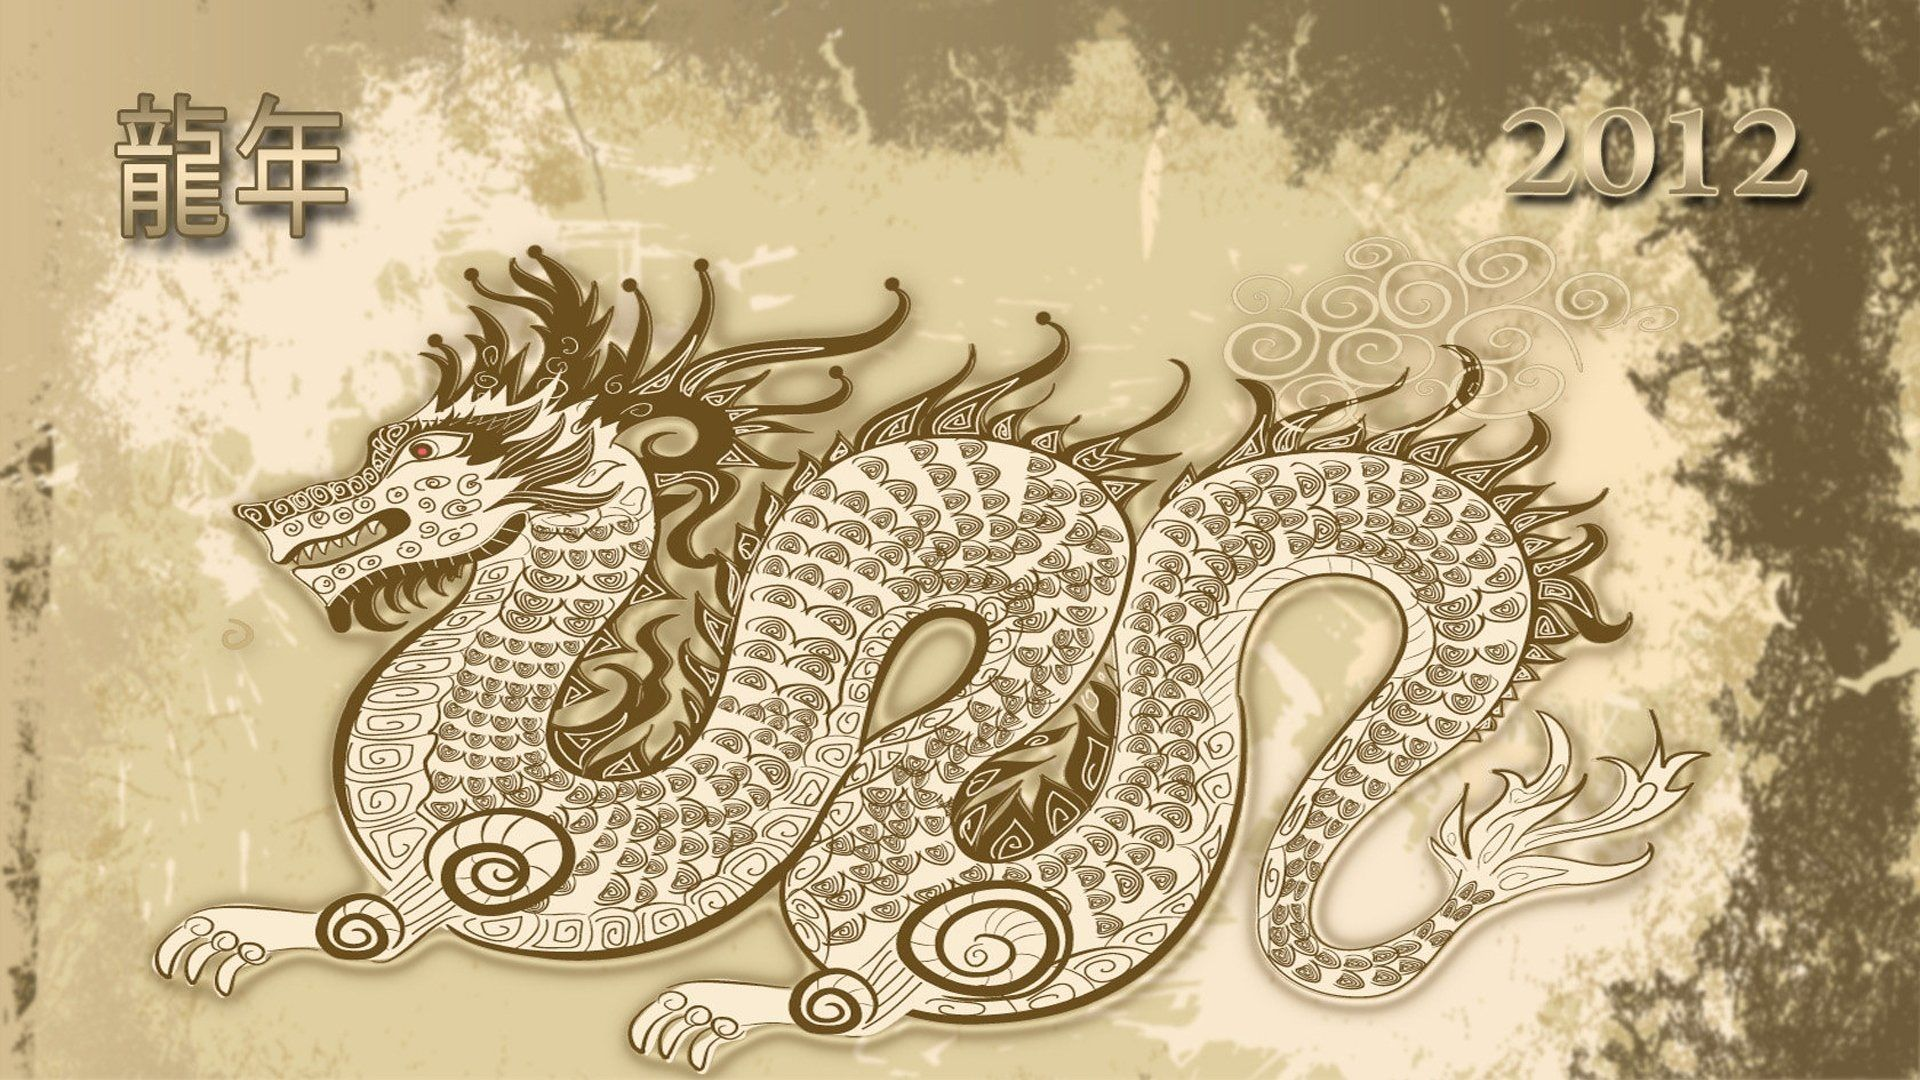 Chinese New Year free hd wallpaper